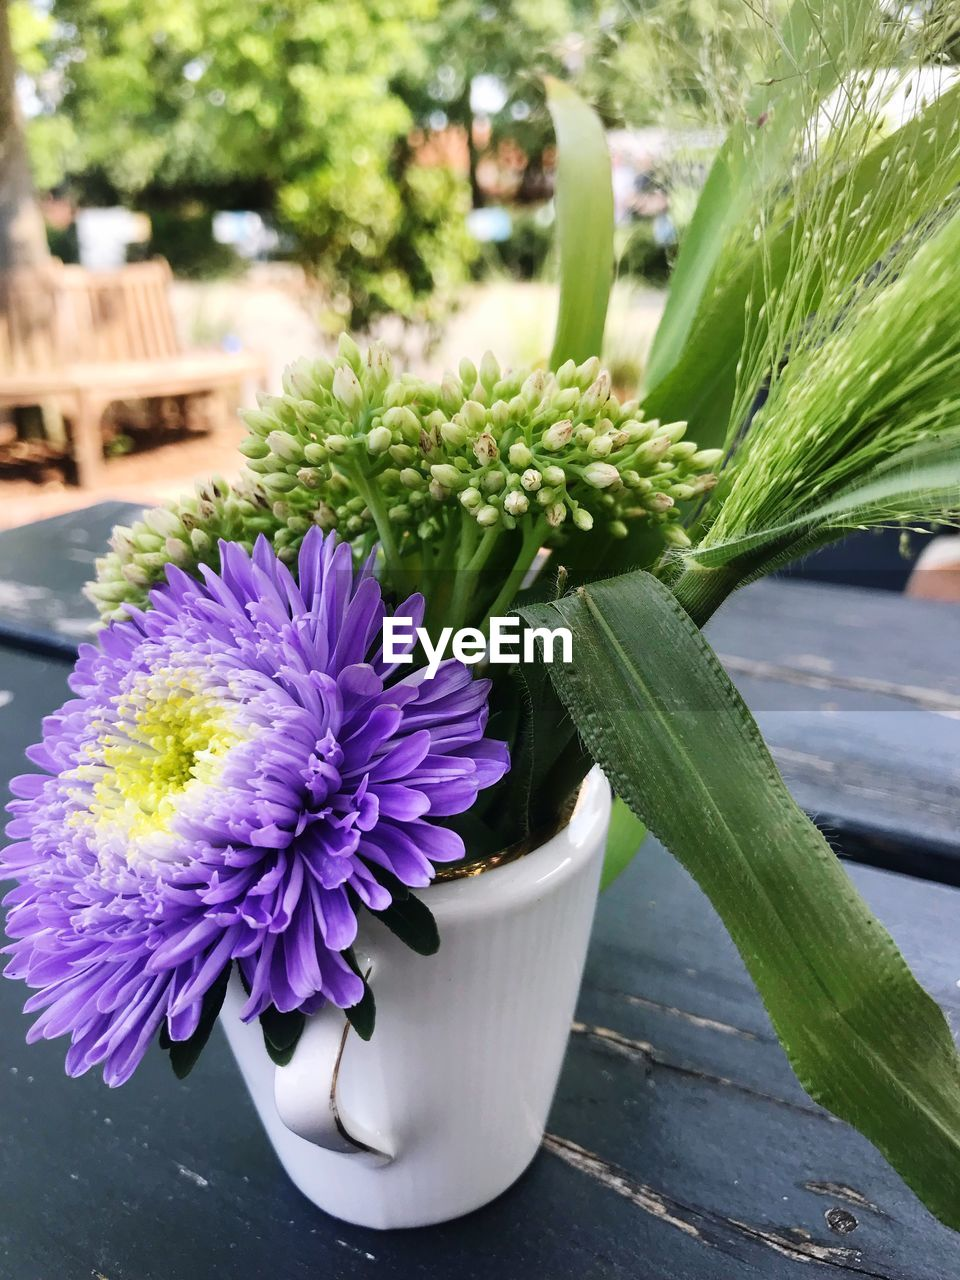 flower, flowering plant, plant, freshness, close-up, beauty in nature, vulnerability, growth, focus on foreground, fragility, nature, inflorescence, flower head, petal, day, green color, potted plant, no people, leaf, plant part, purple, outdoors, flower pot